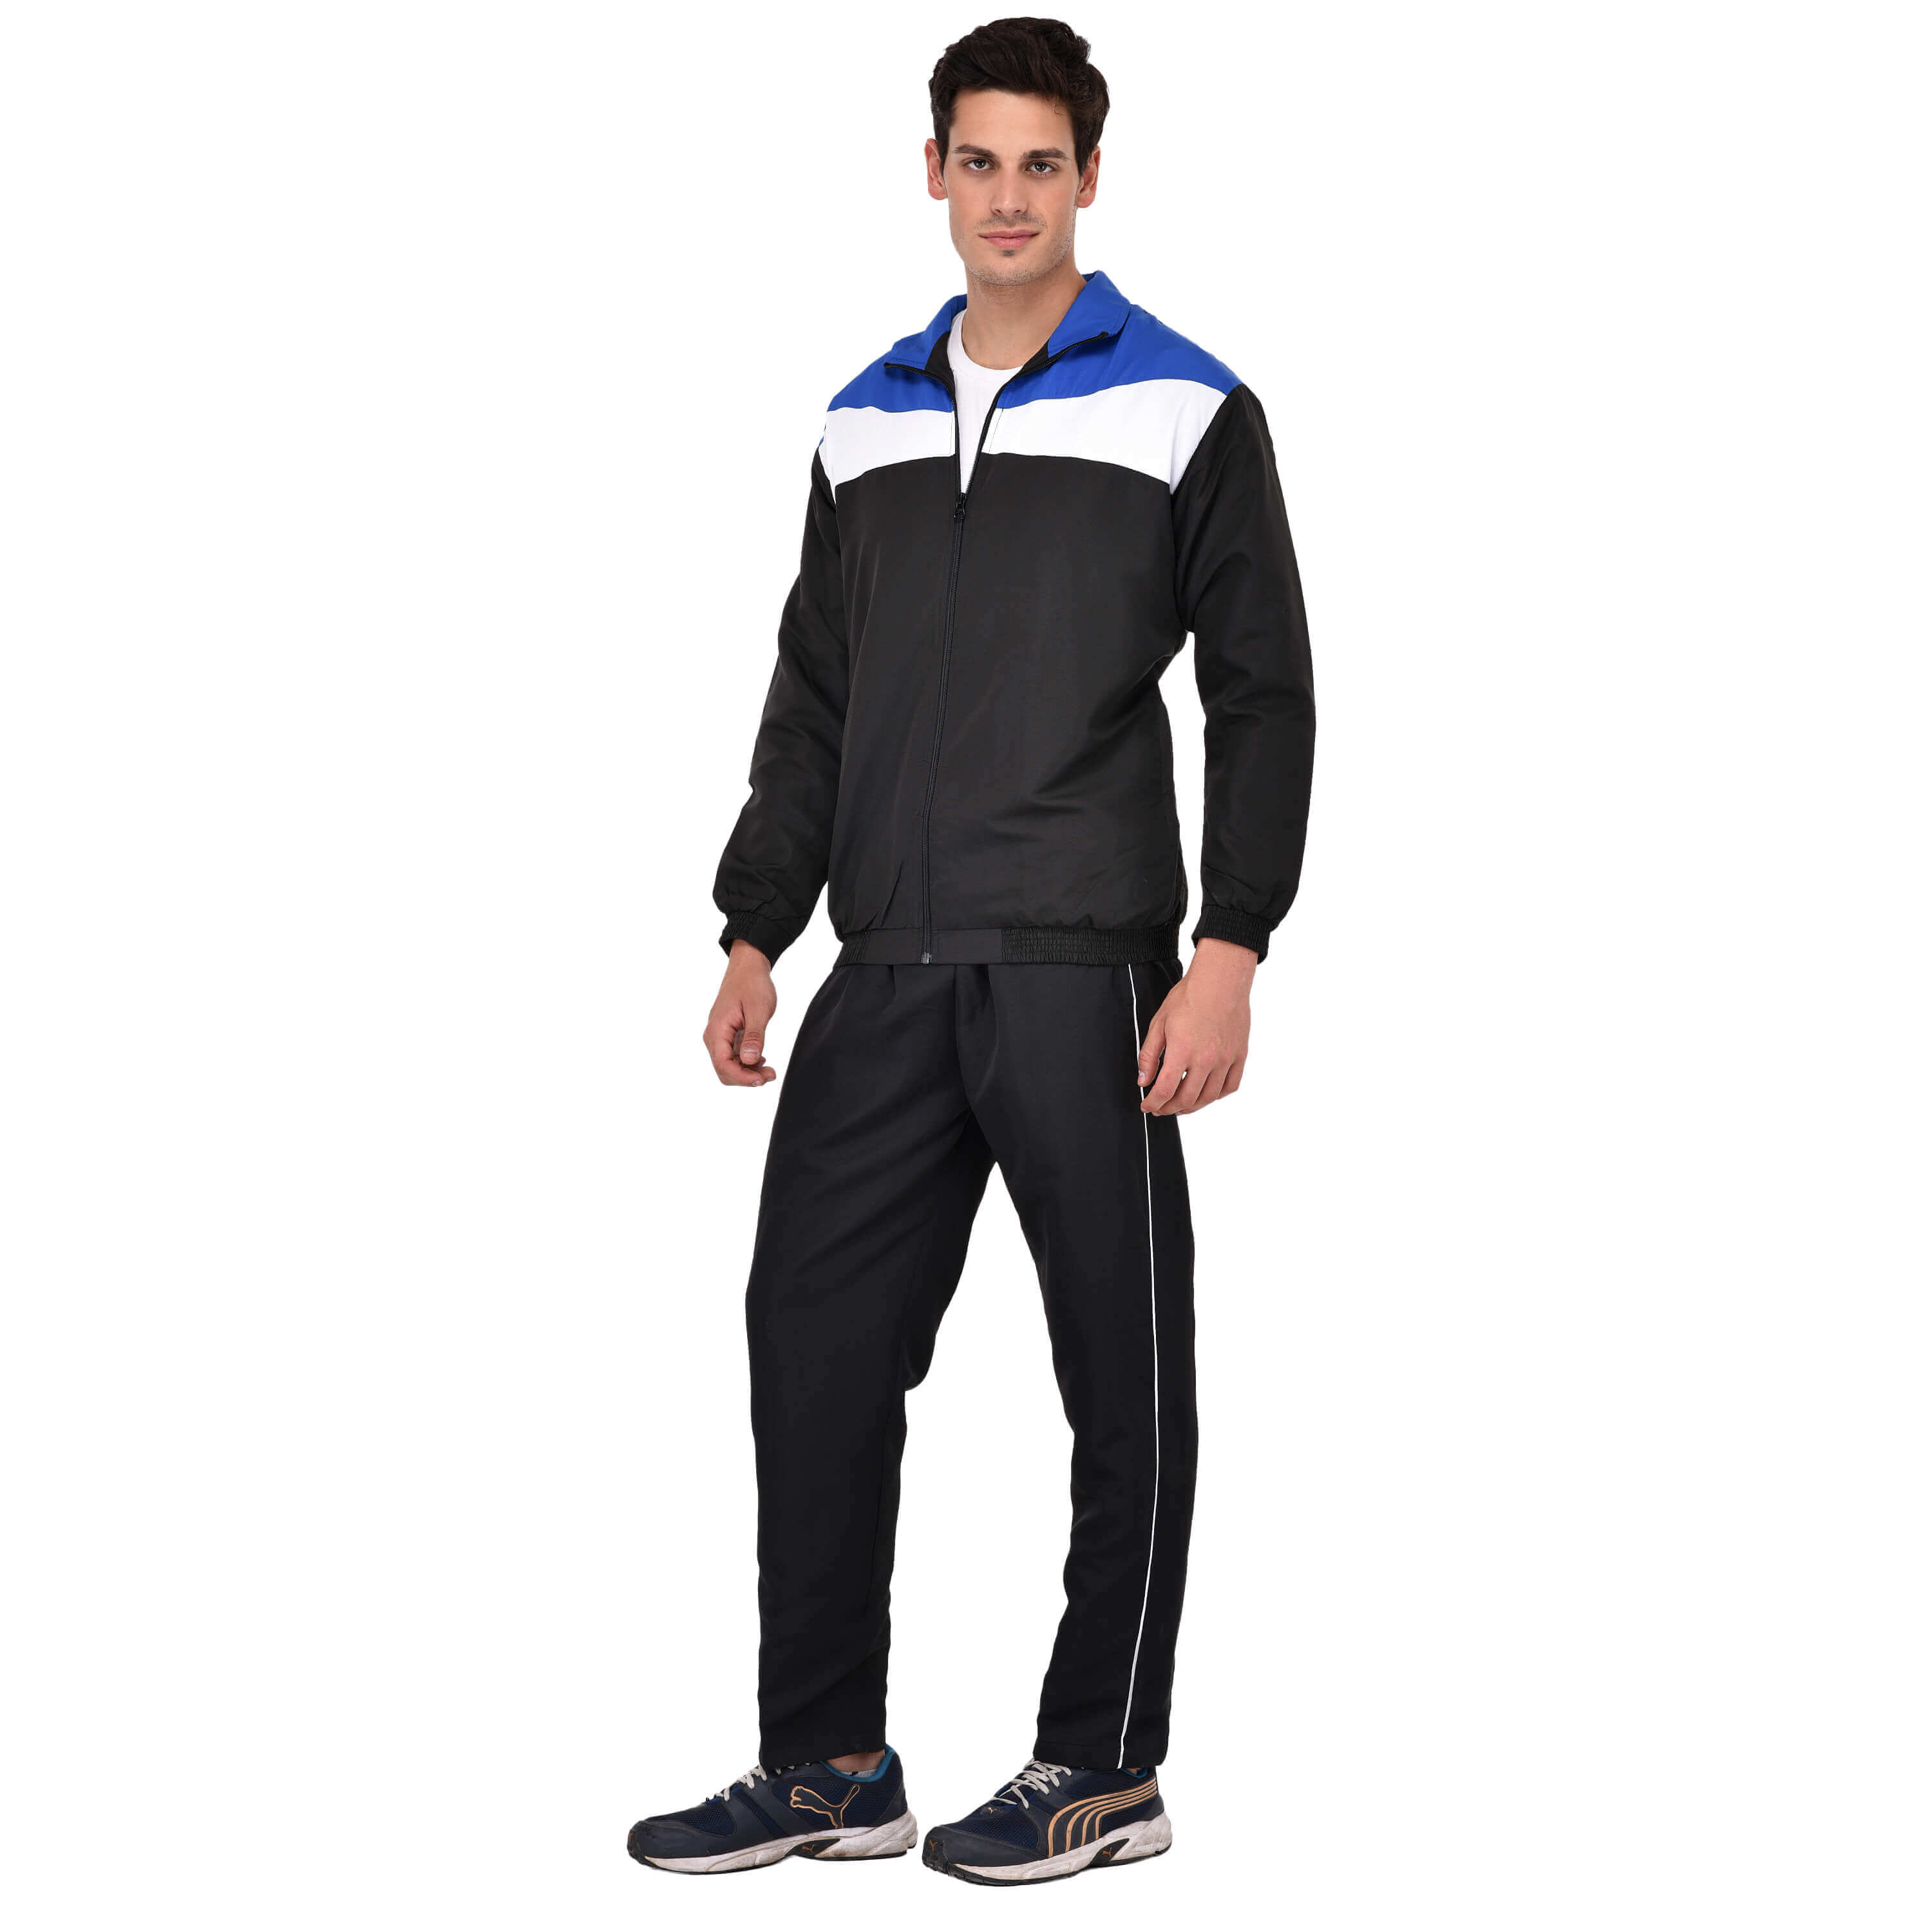 Tracksuit Set Manufacturers in Solapur